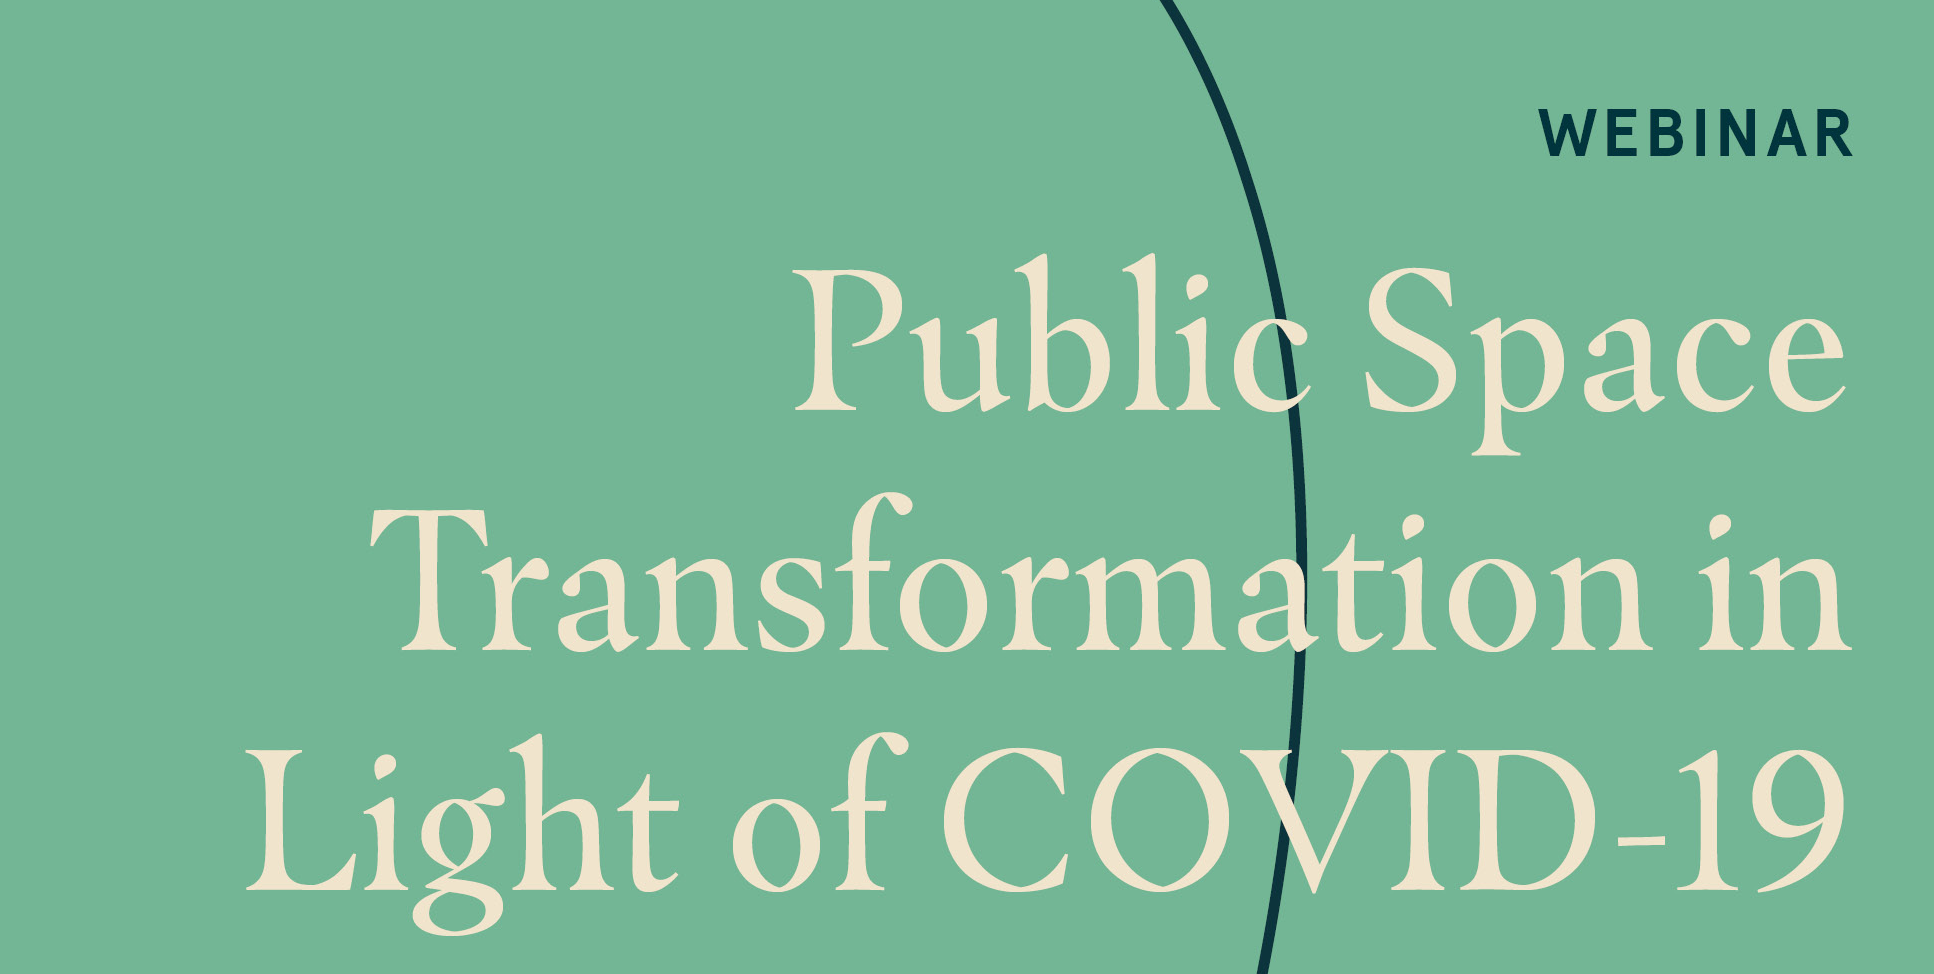 Public Space Transformation in Light of COVID-19